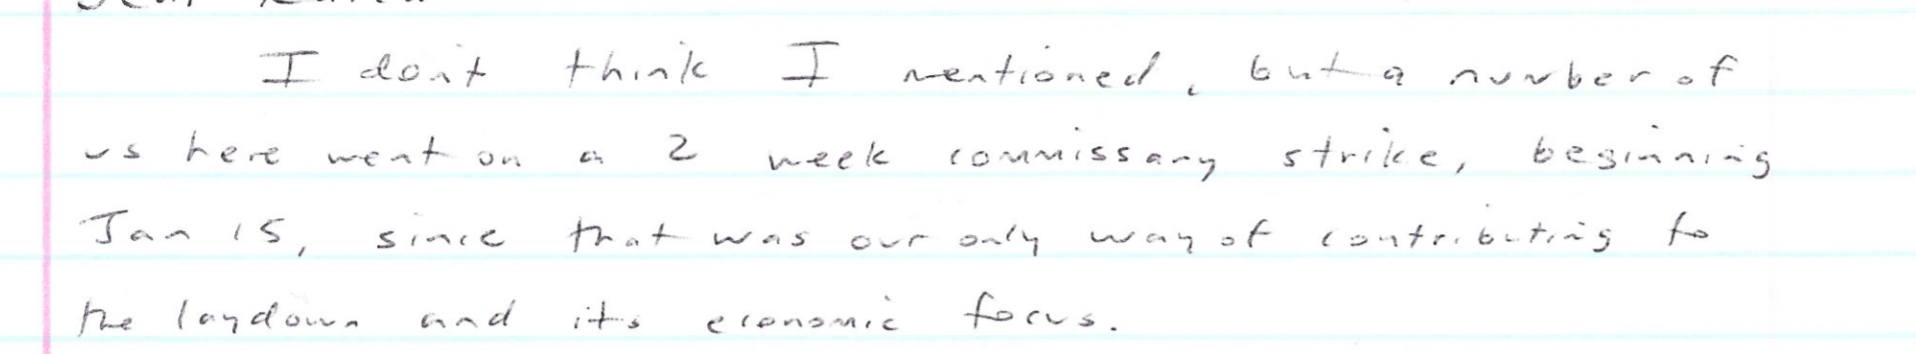 Letter from prisoner about commissary strike.